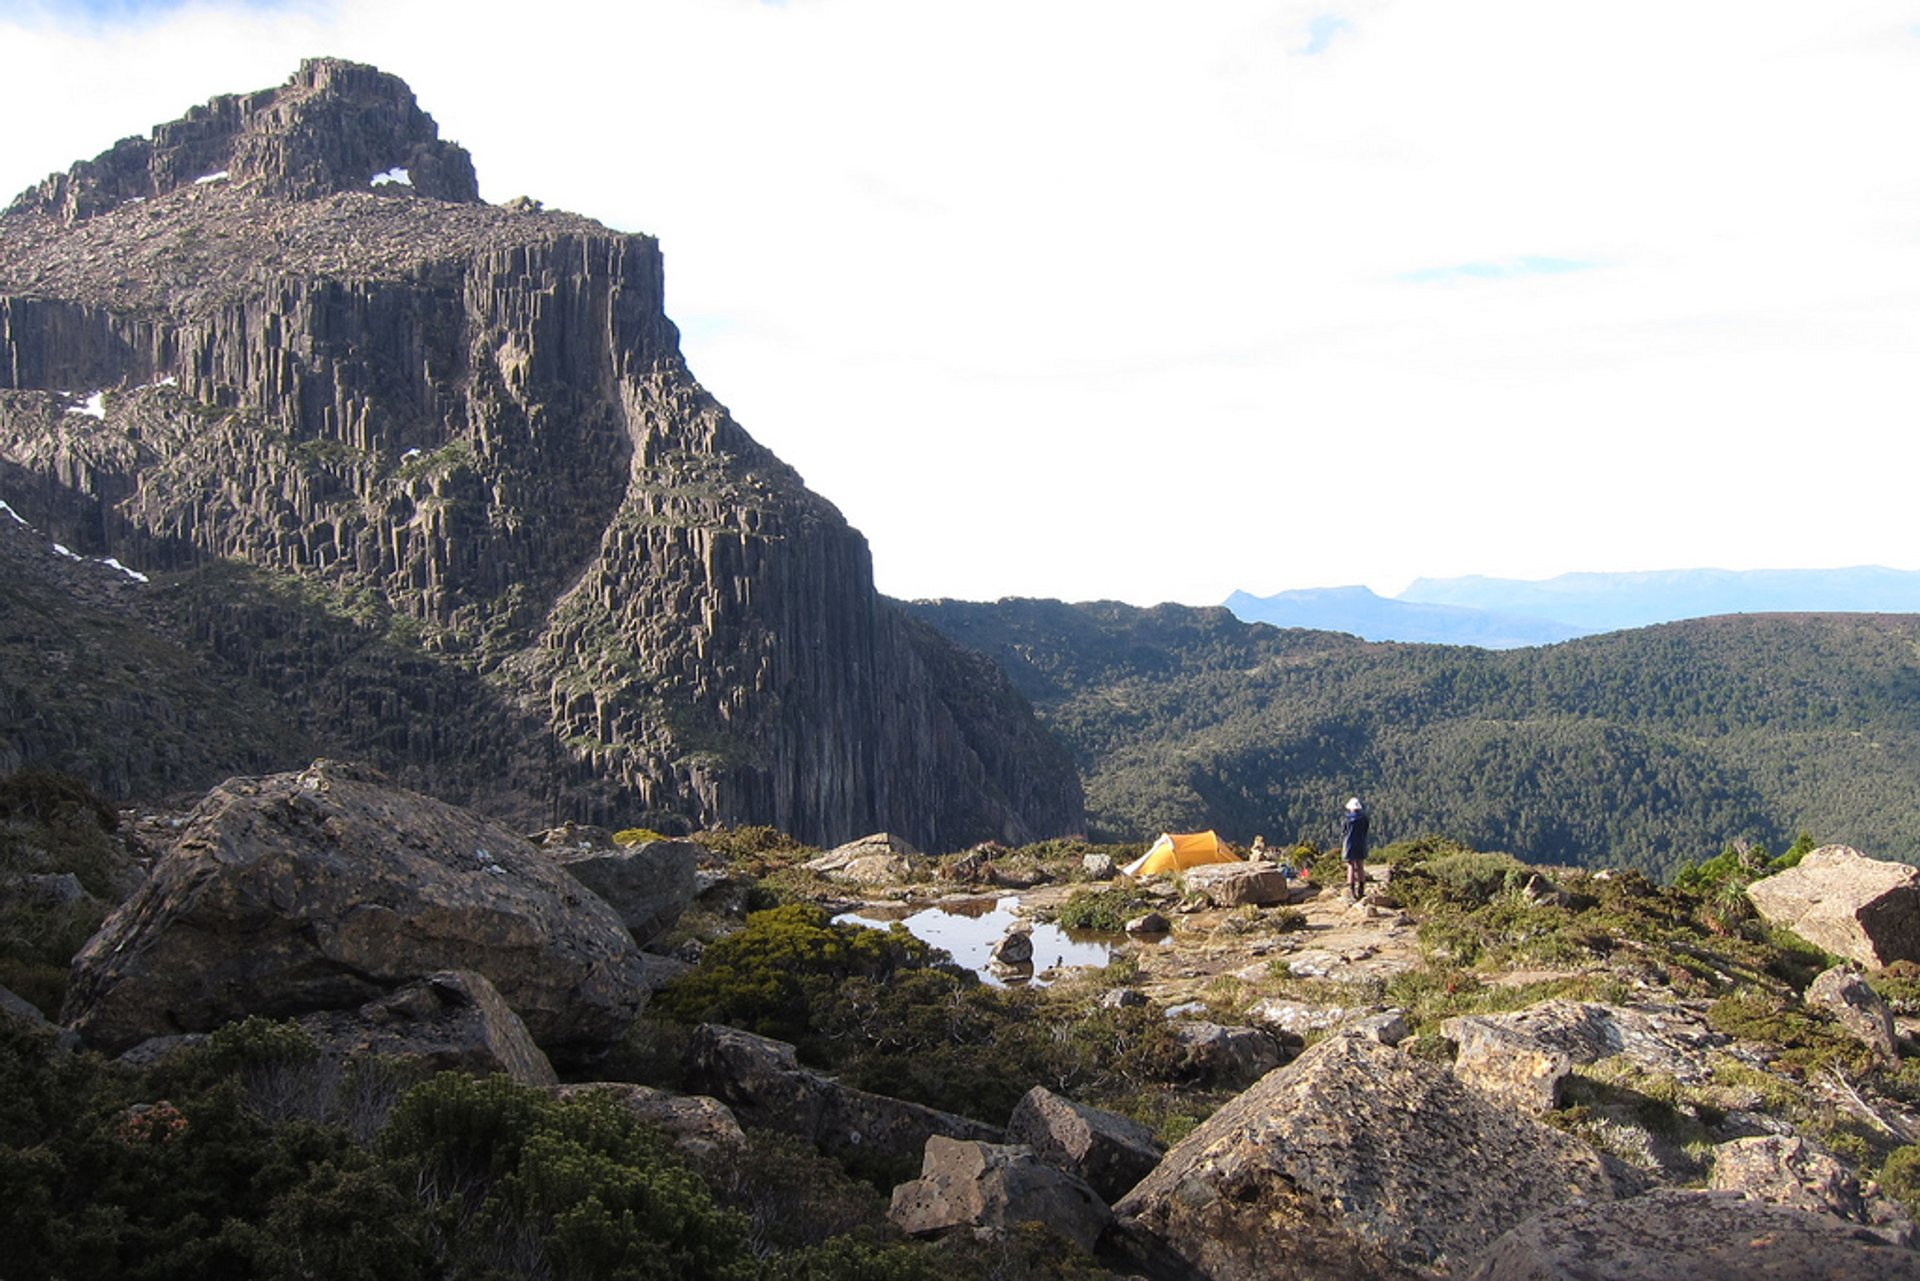 Mt Anne Circuit—a rather demanding 3-day circuit with a strenuous climb up to get to the Mt Eliza alpine zone. You will encounter a challenging traverse and boggy terrain, so make sure you are well-prepared! 2020